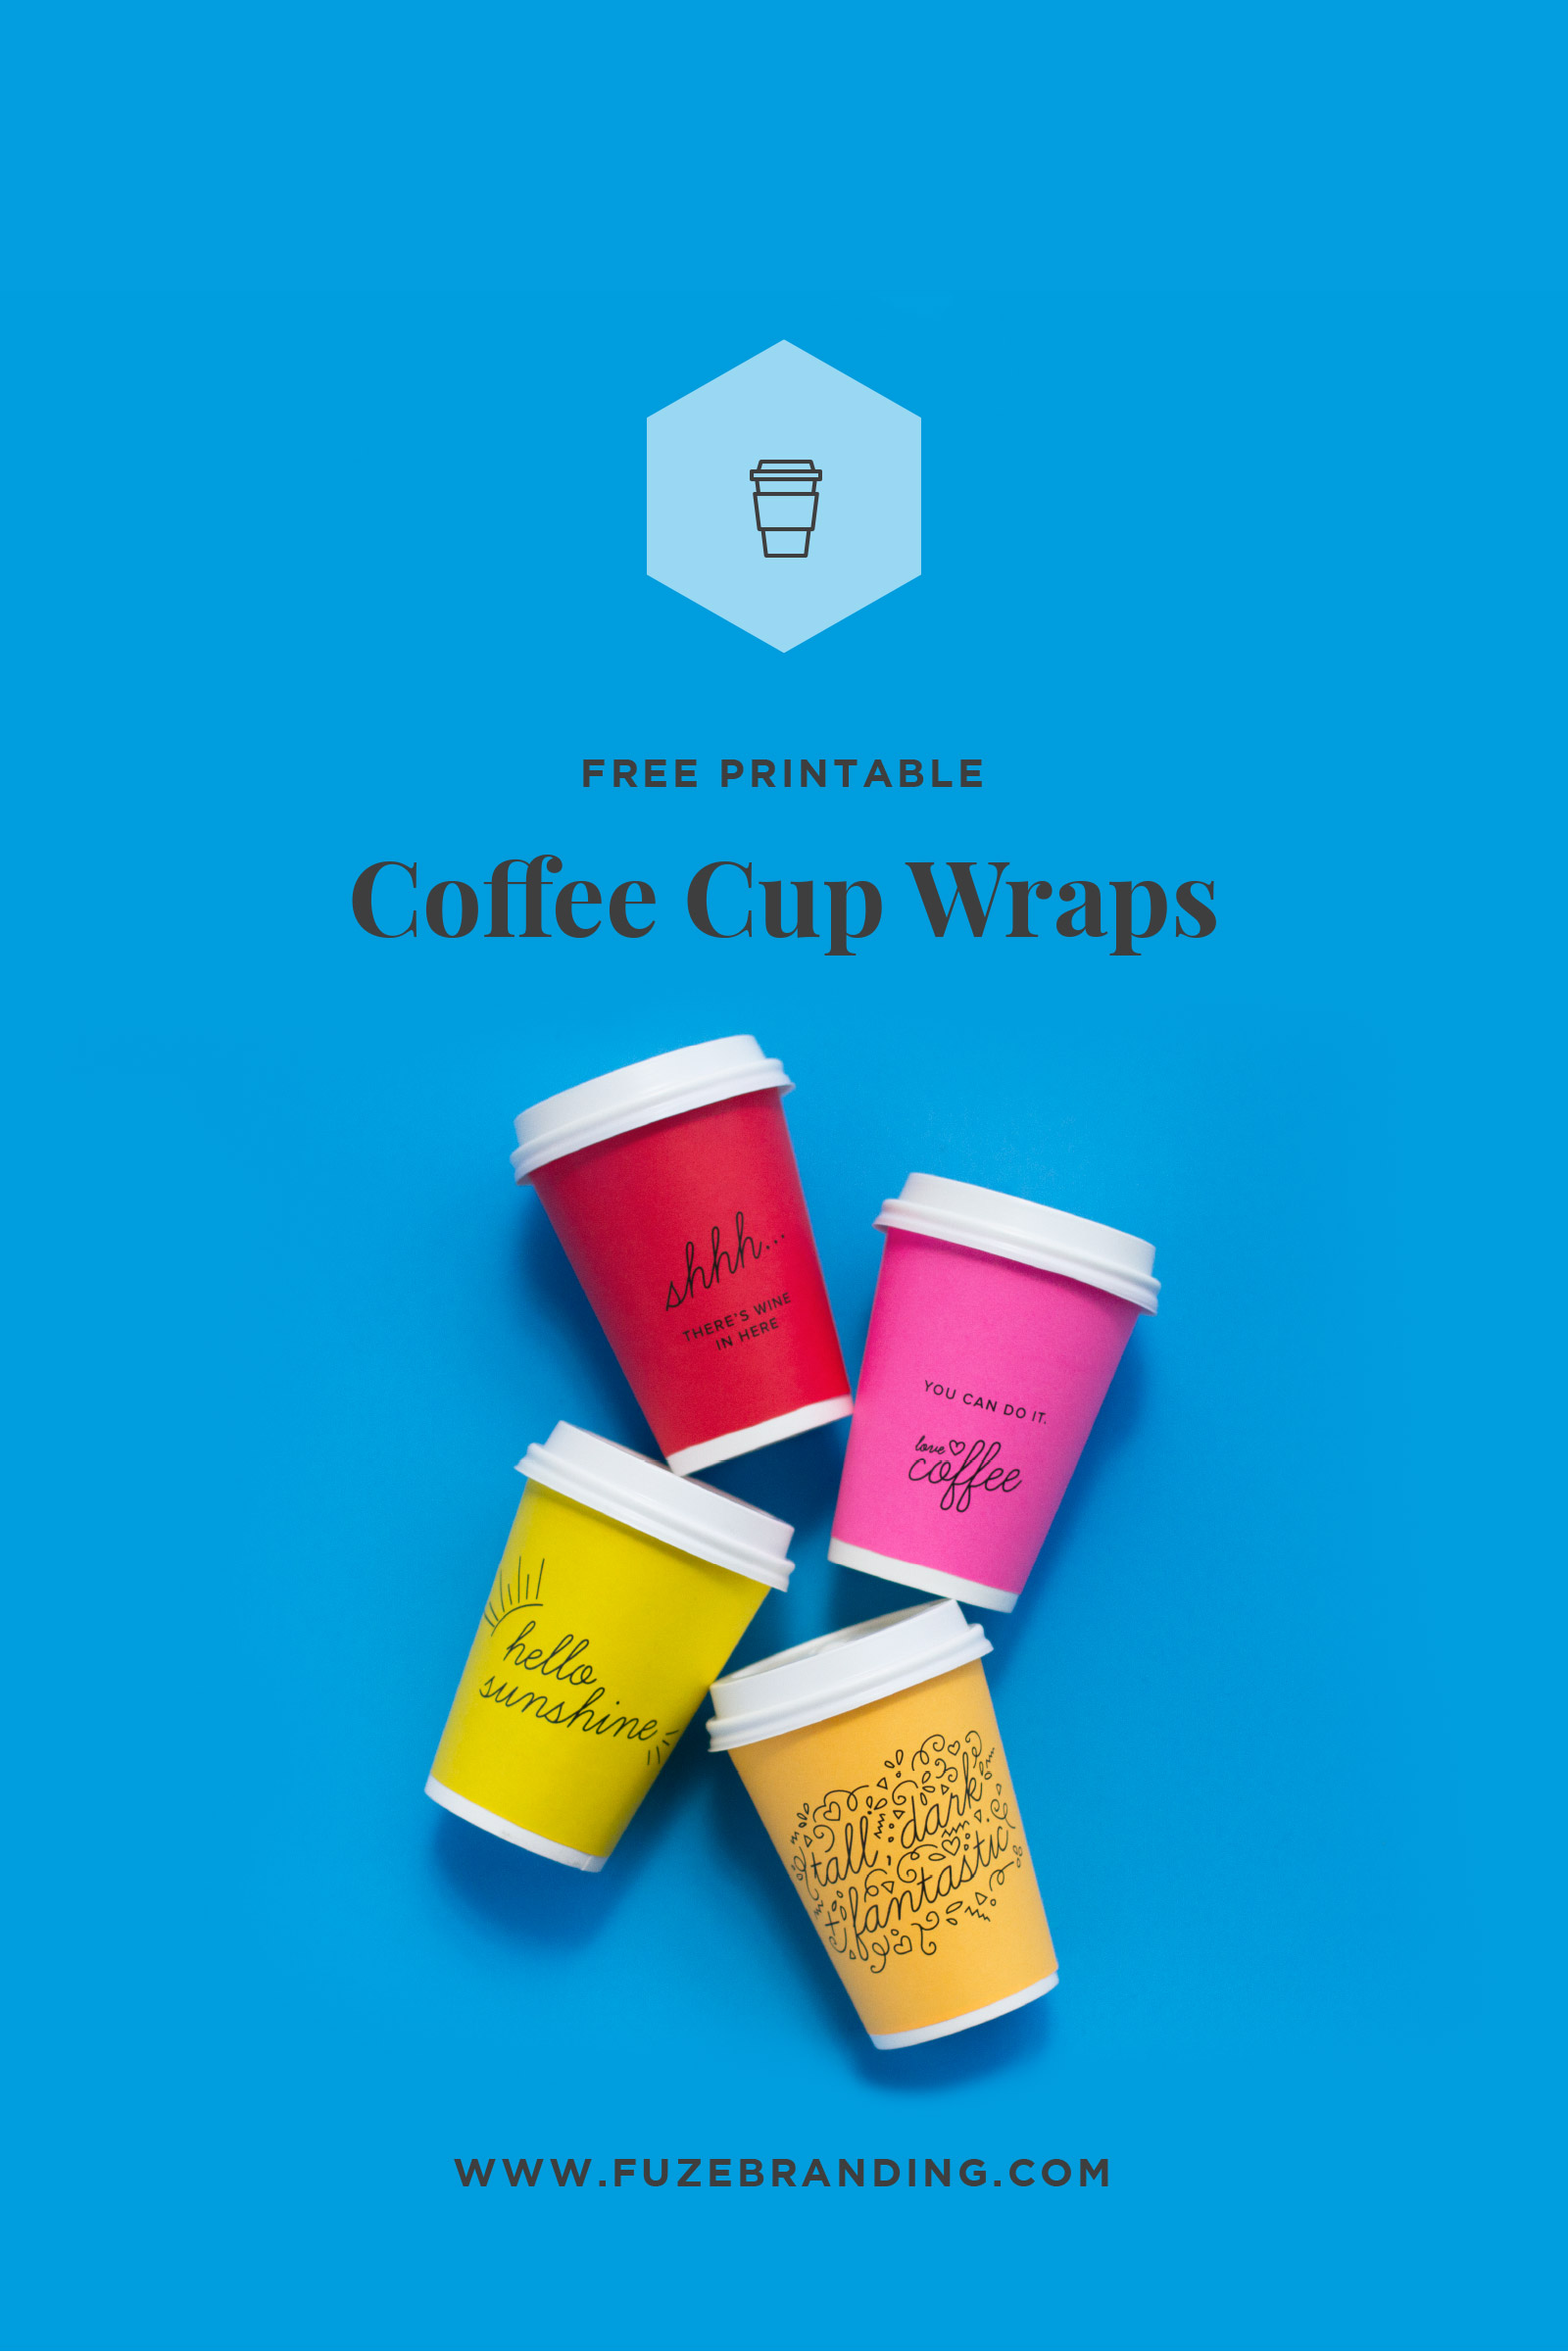 photo regarding Coffee Cup Printable referred to as Fuze Branding - Cost-free Printable Espresso Cup Wraps In the direction of Perk Up